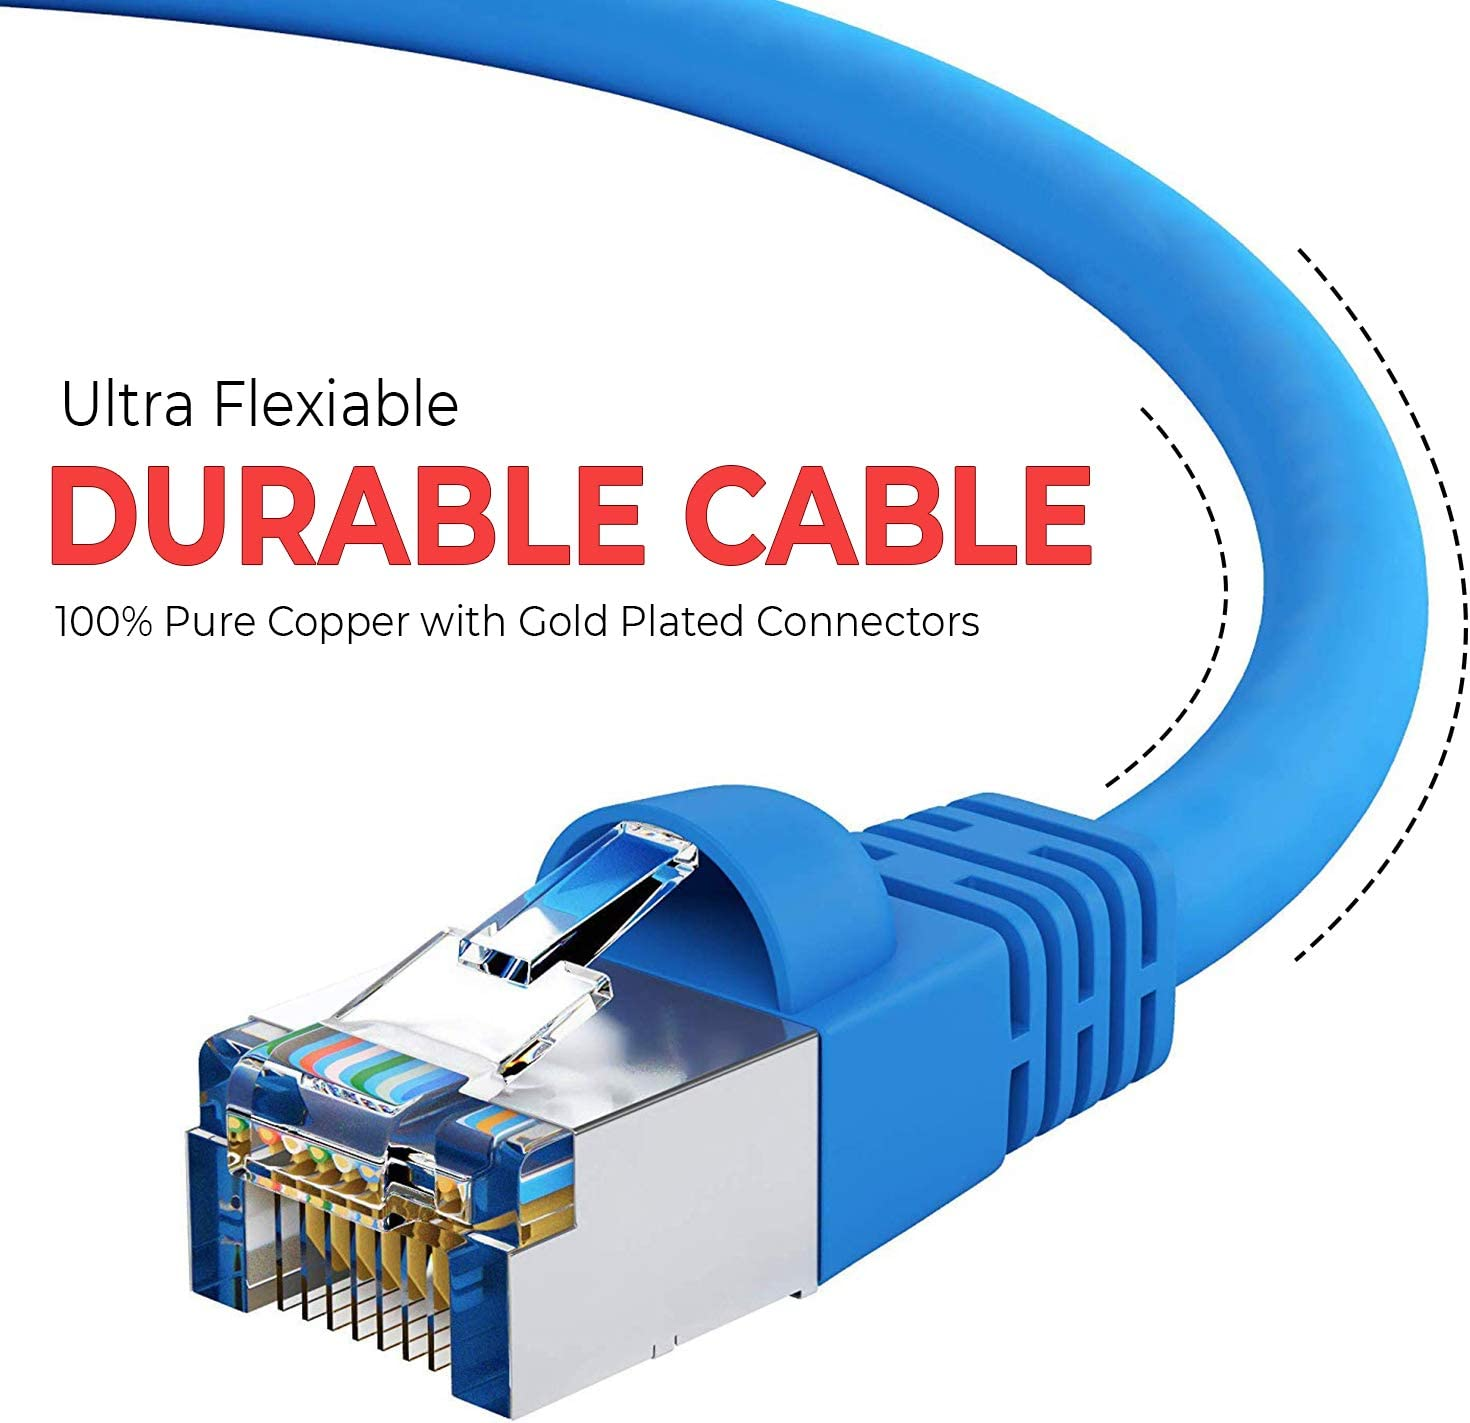 Available in 28 Lengths and 10 Colors Computer Network Cable with Snagless Connector Cat5e Shielded Ethernet Cable GOWOS 20-Pack RJ45 10Gbps High Speed LAN Internet Cord FTP 3 Feet - Gray